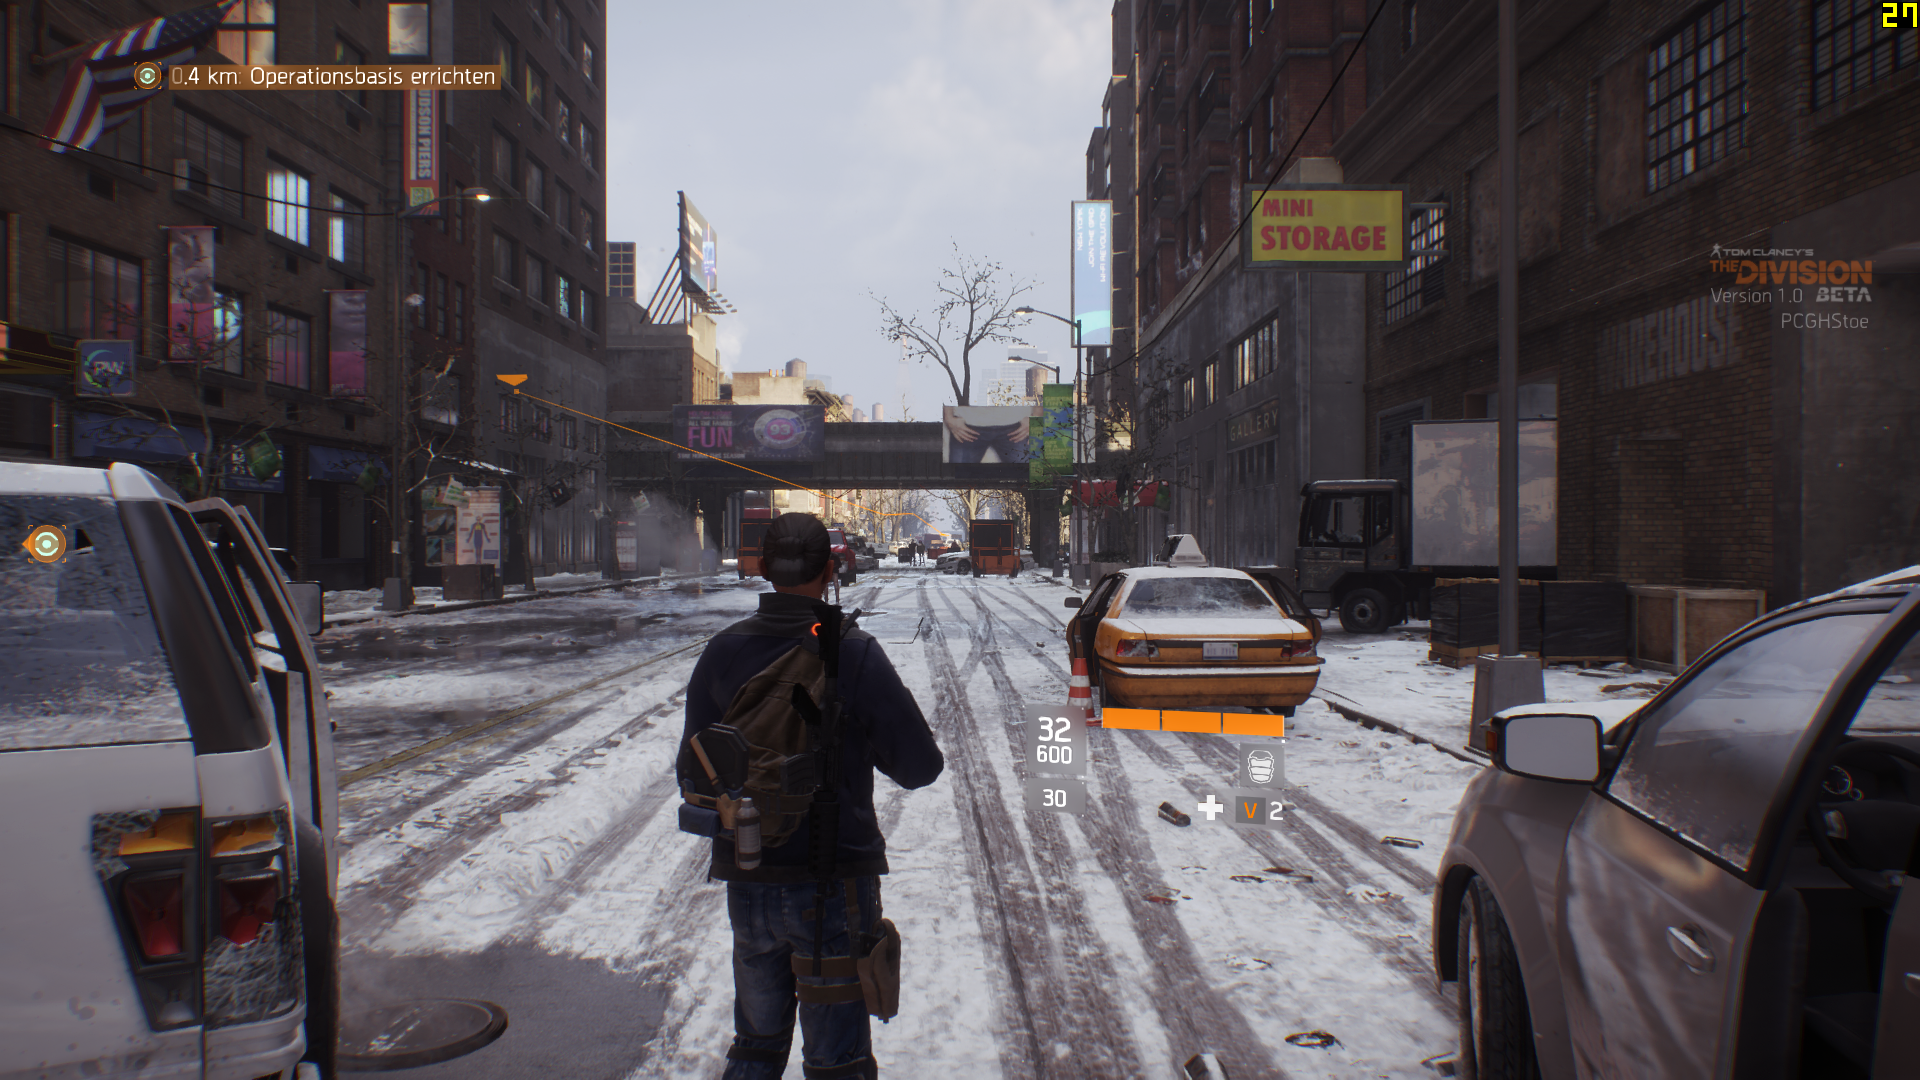 TheDivision 01 max - Benchmarksetting-pcgh